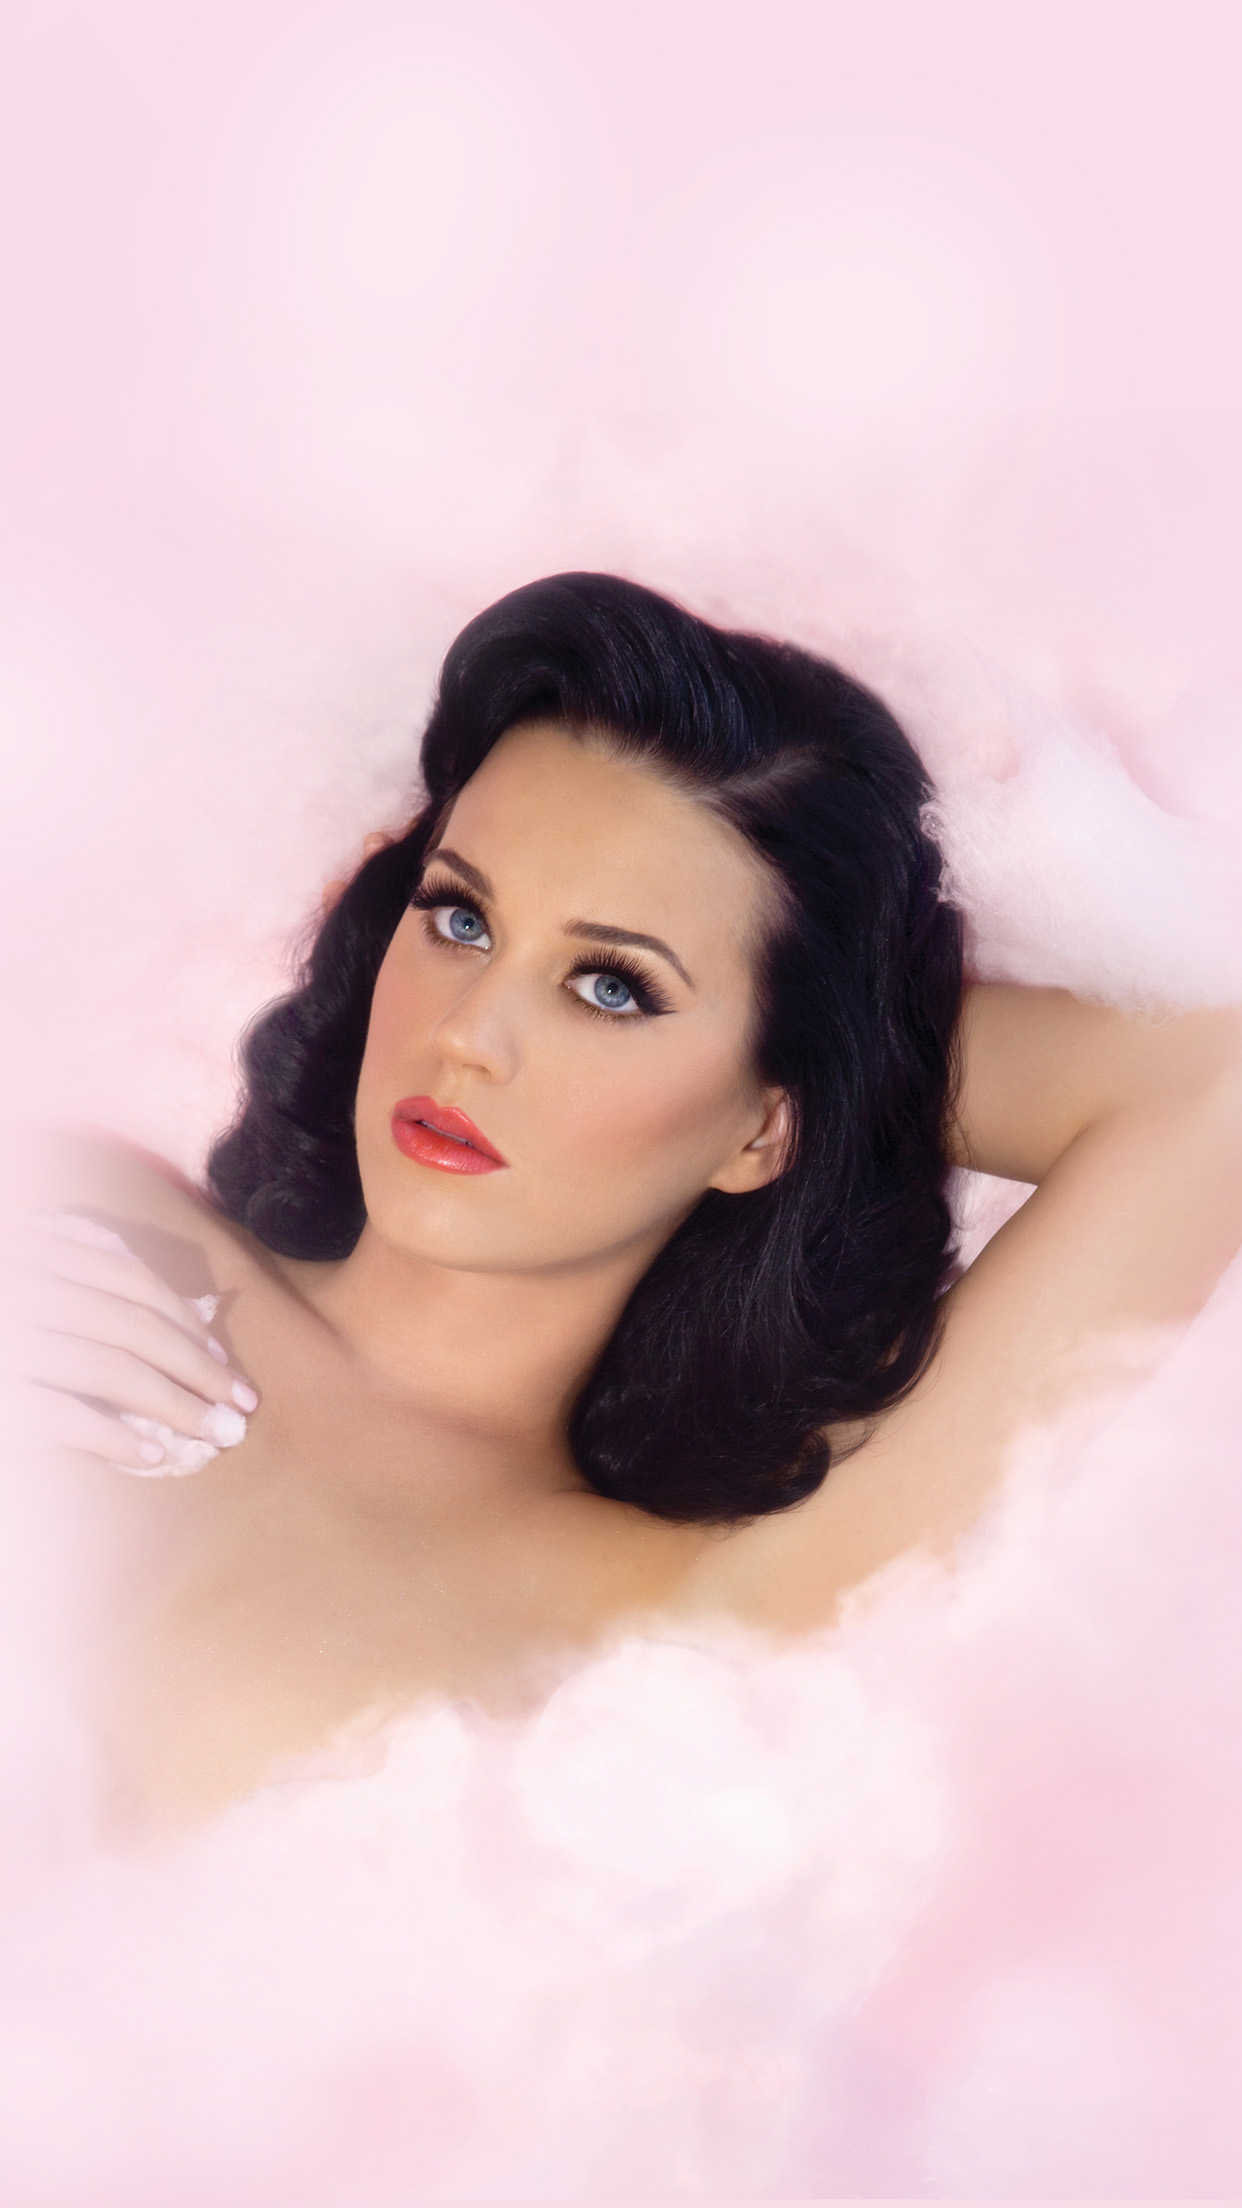 Katy Perry Pink Album Cover Art Music Android Wallpaper Android Hd